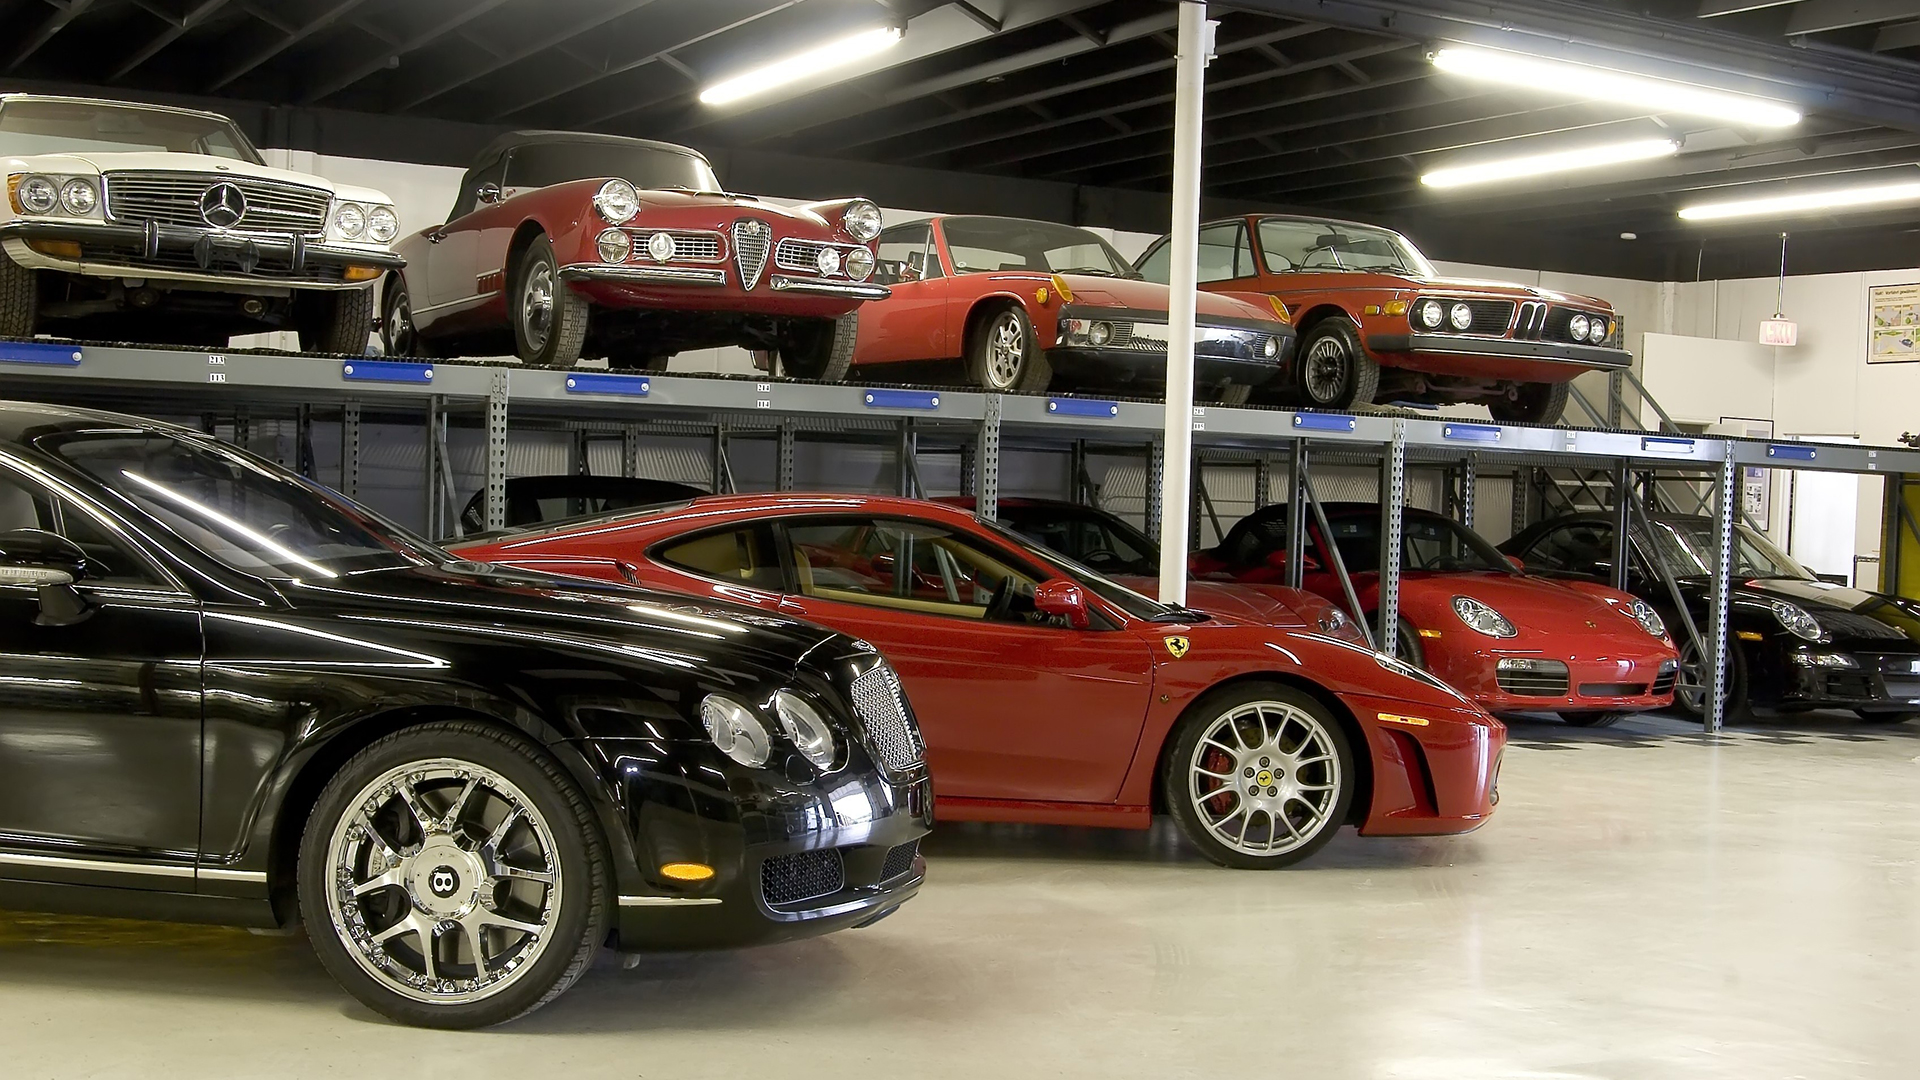 Dallas Car Storage | Exotic, Classic, Antique, Long Term Vehicle Storage